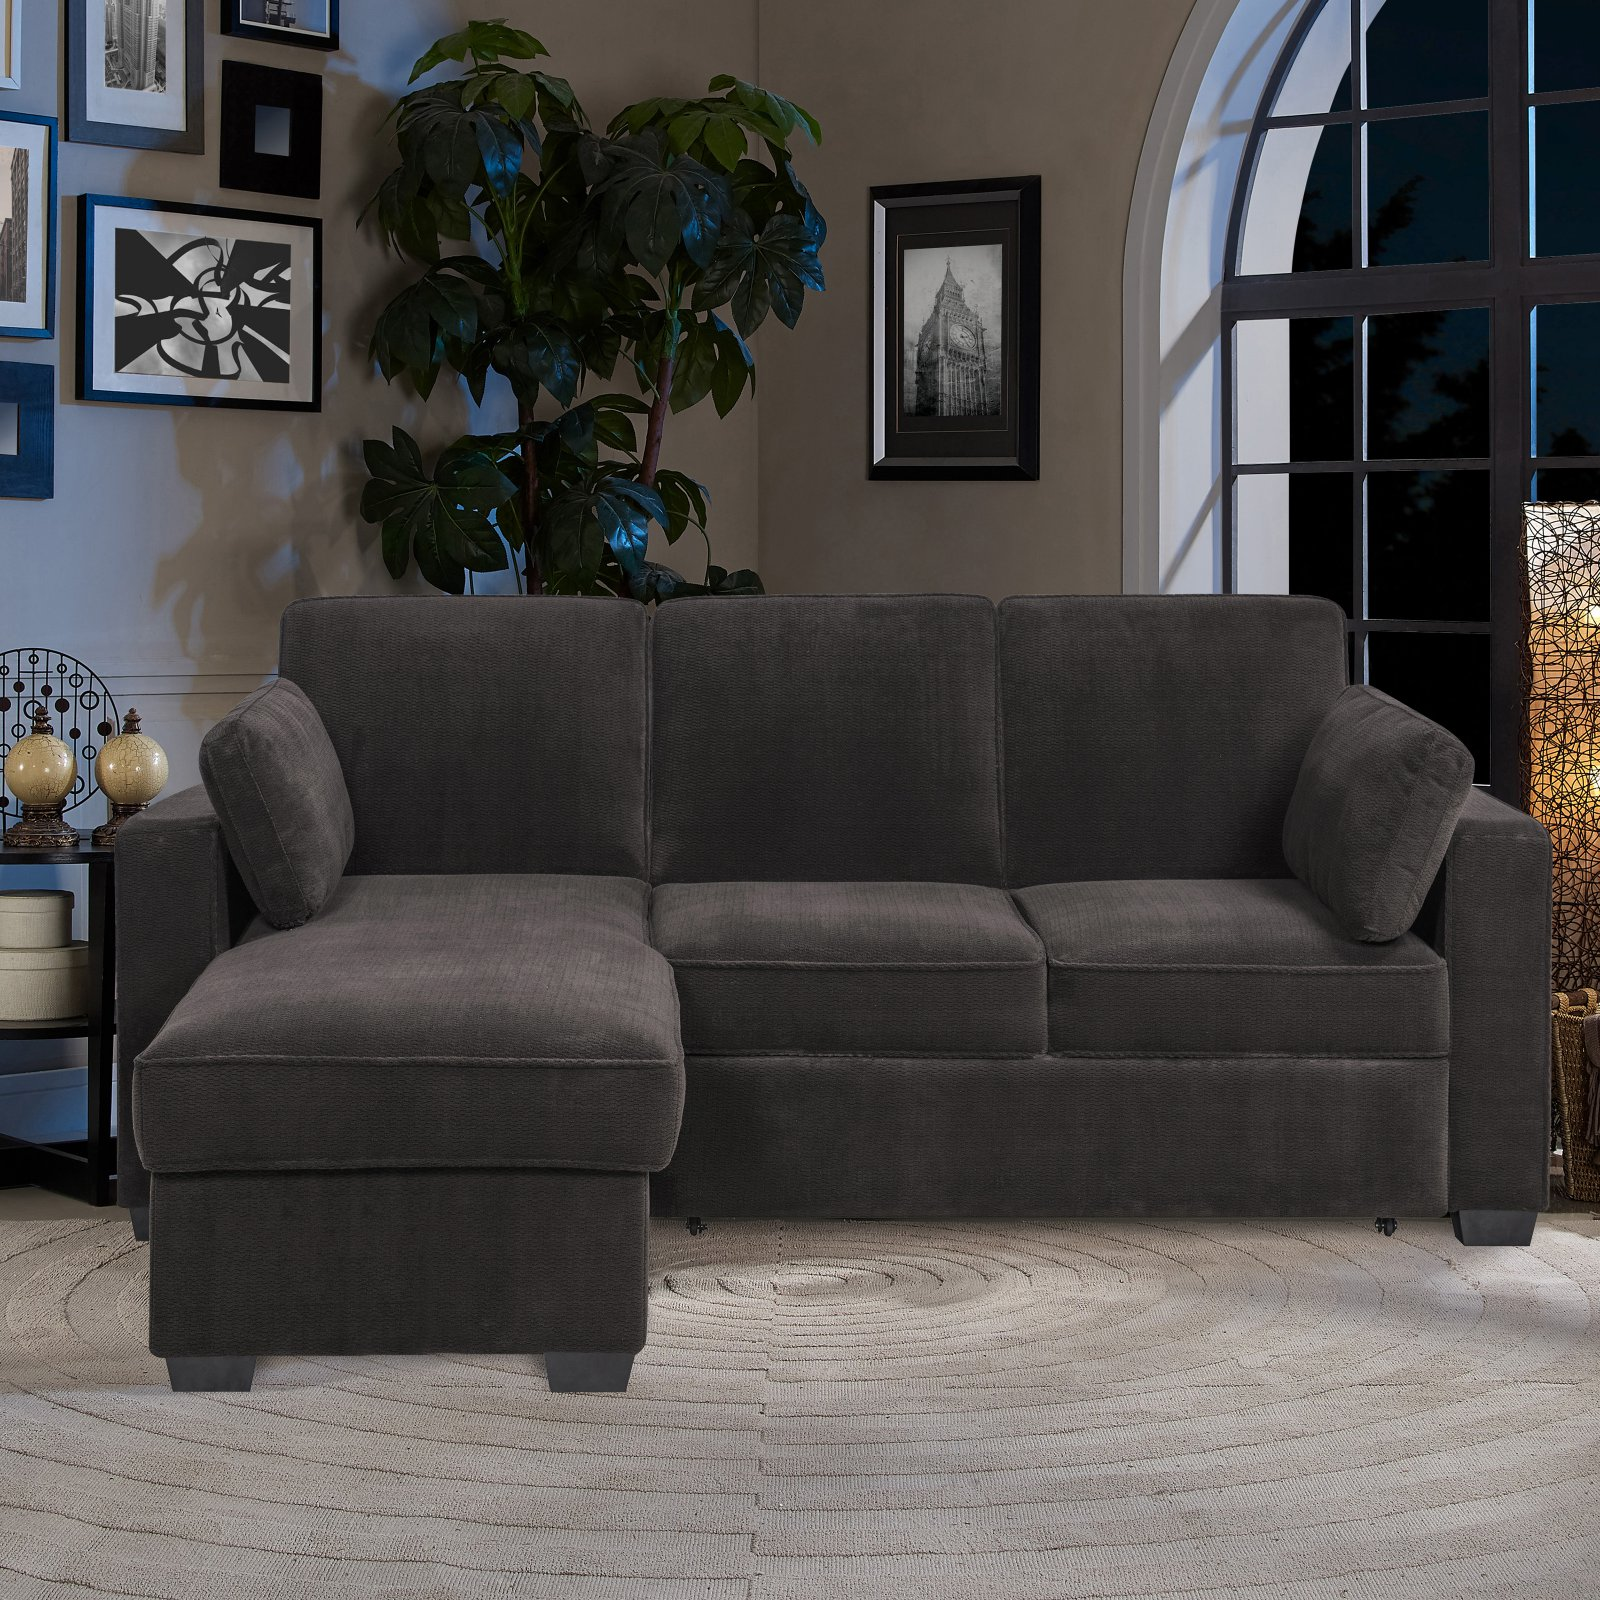 Serta Cory Dream Convertible Pull Out Sectional Sofa